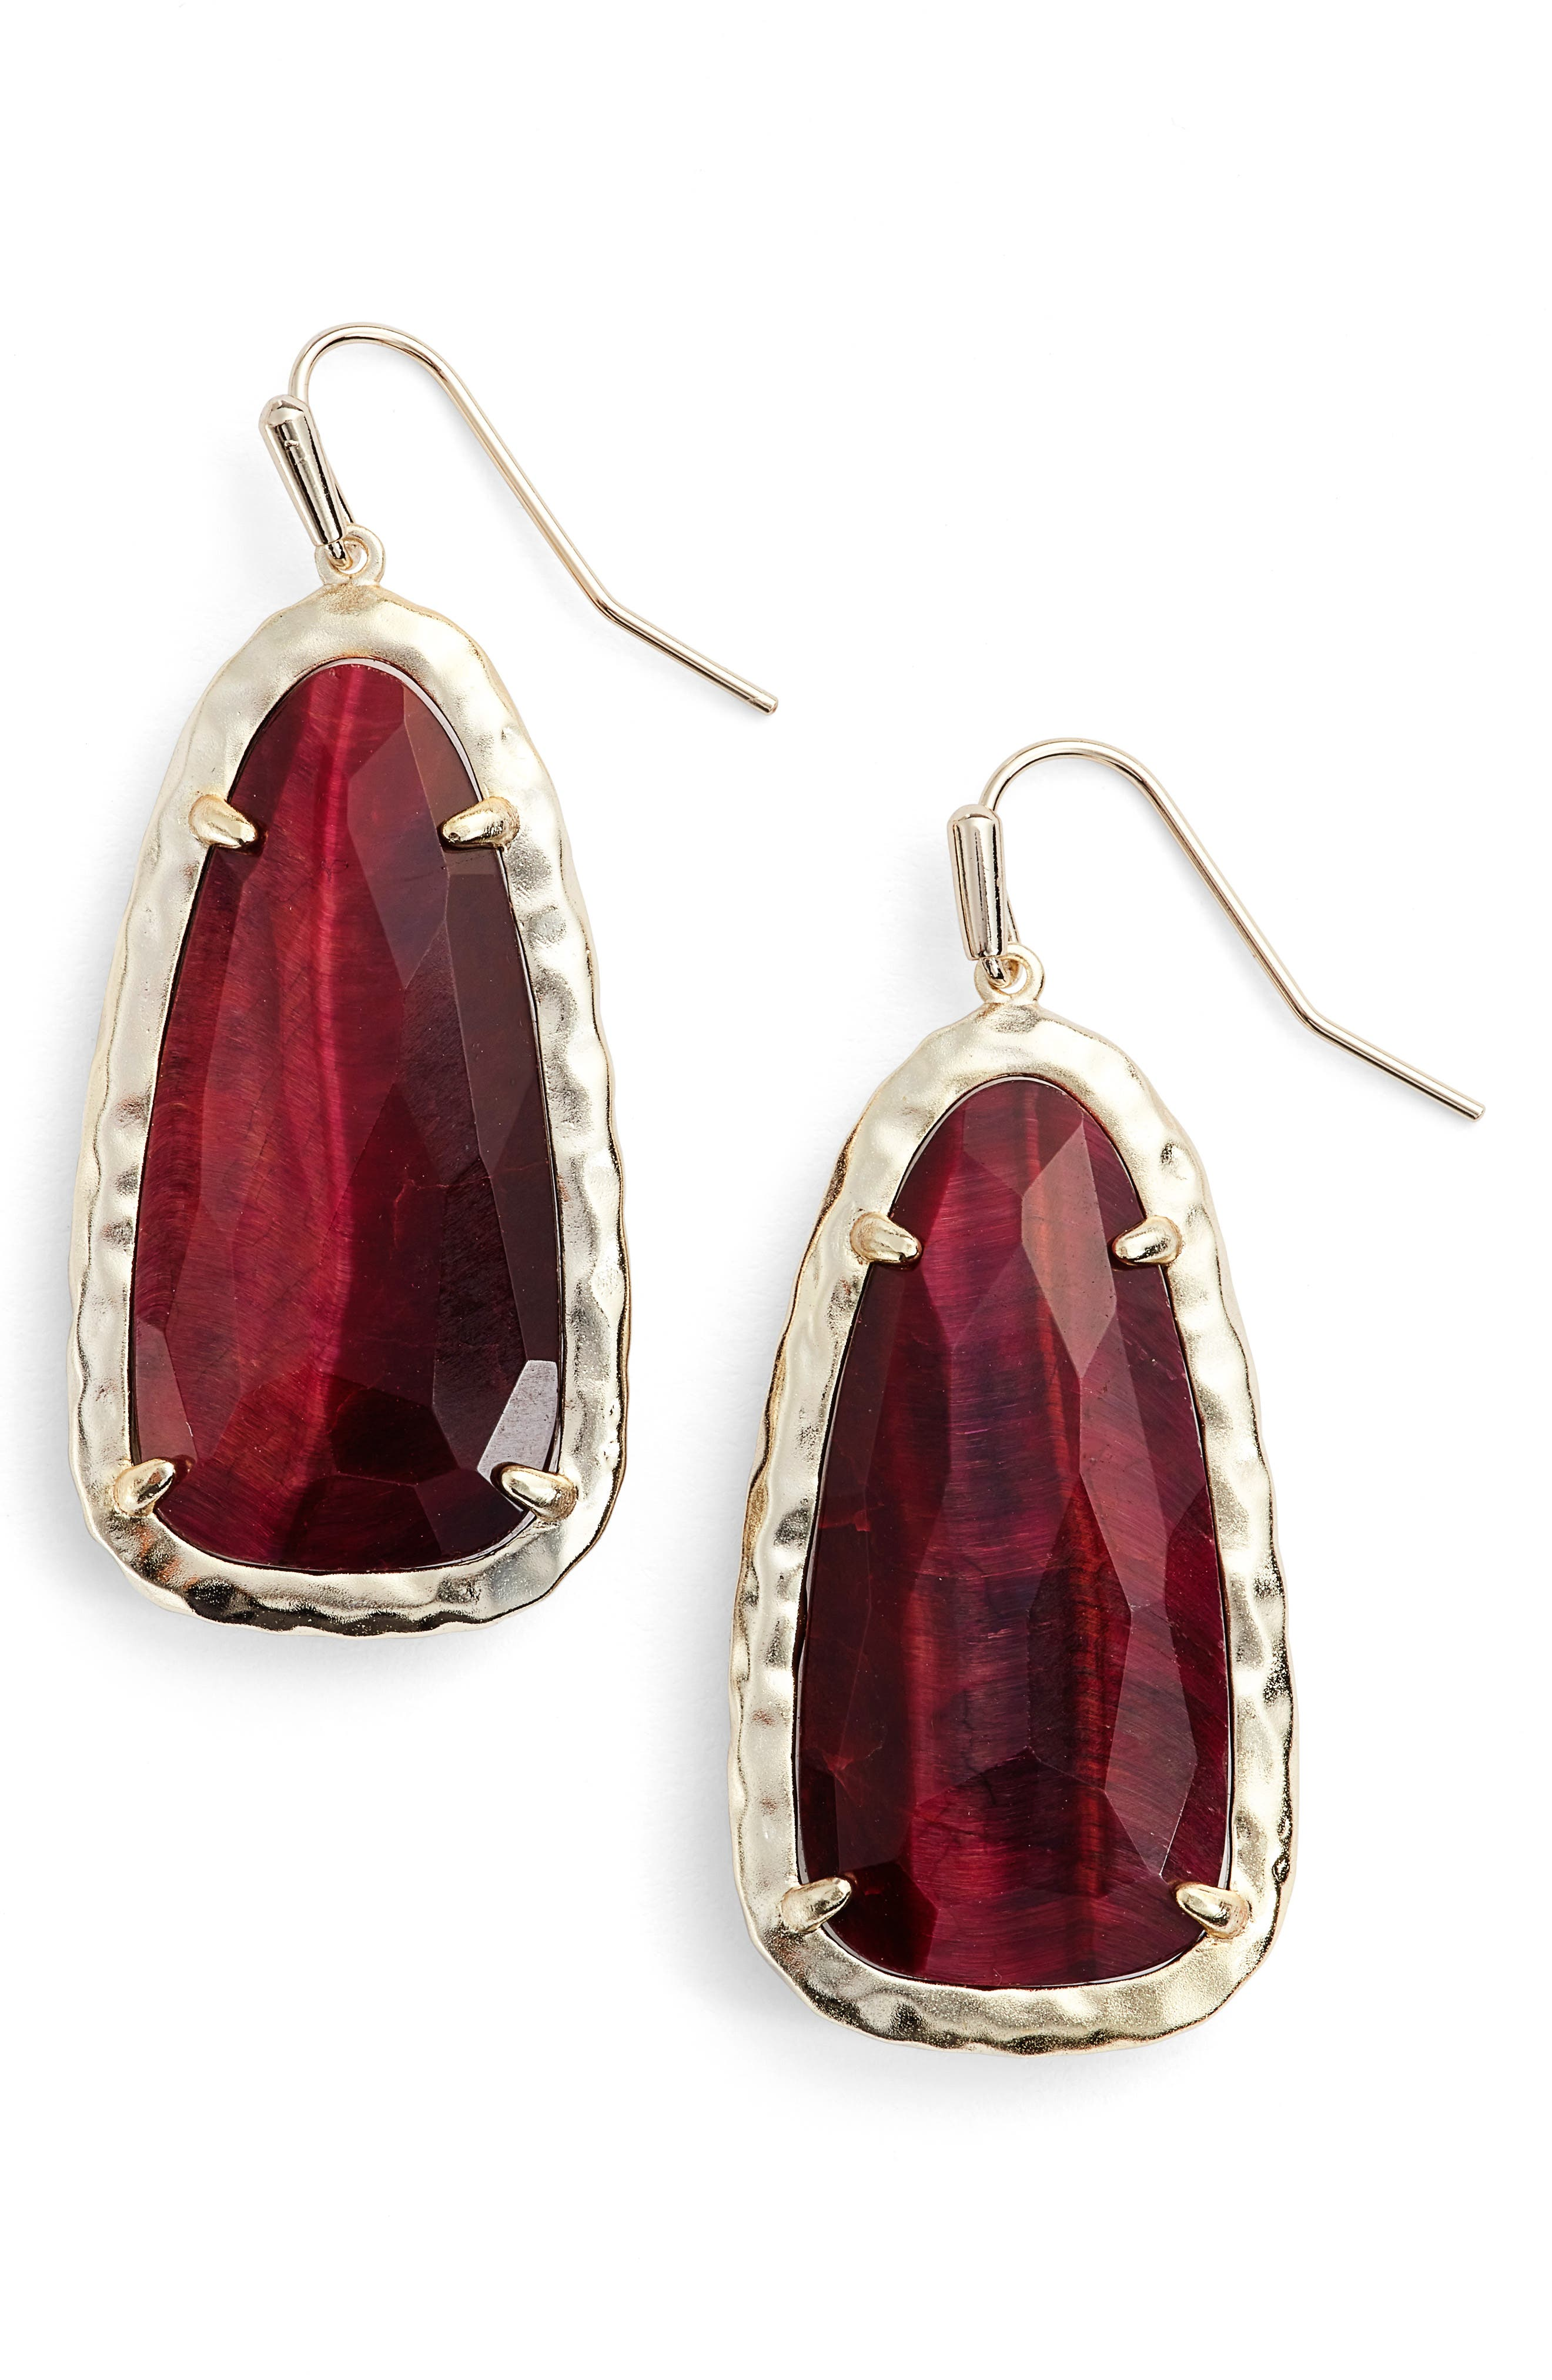 Kendra Scott Lyn Drop Earrings